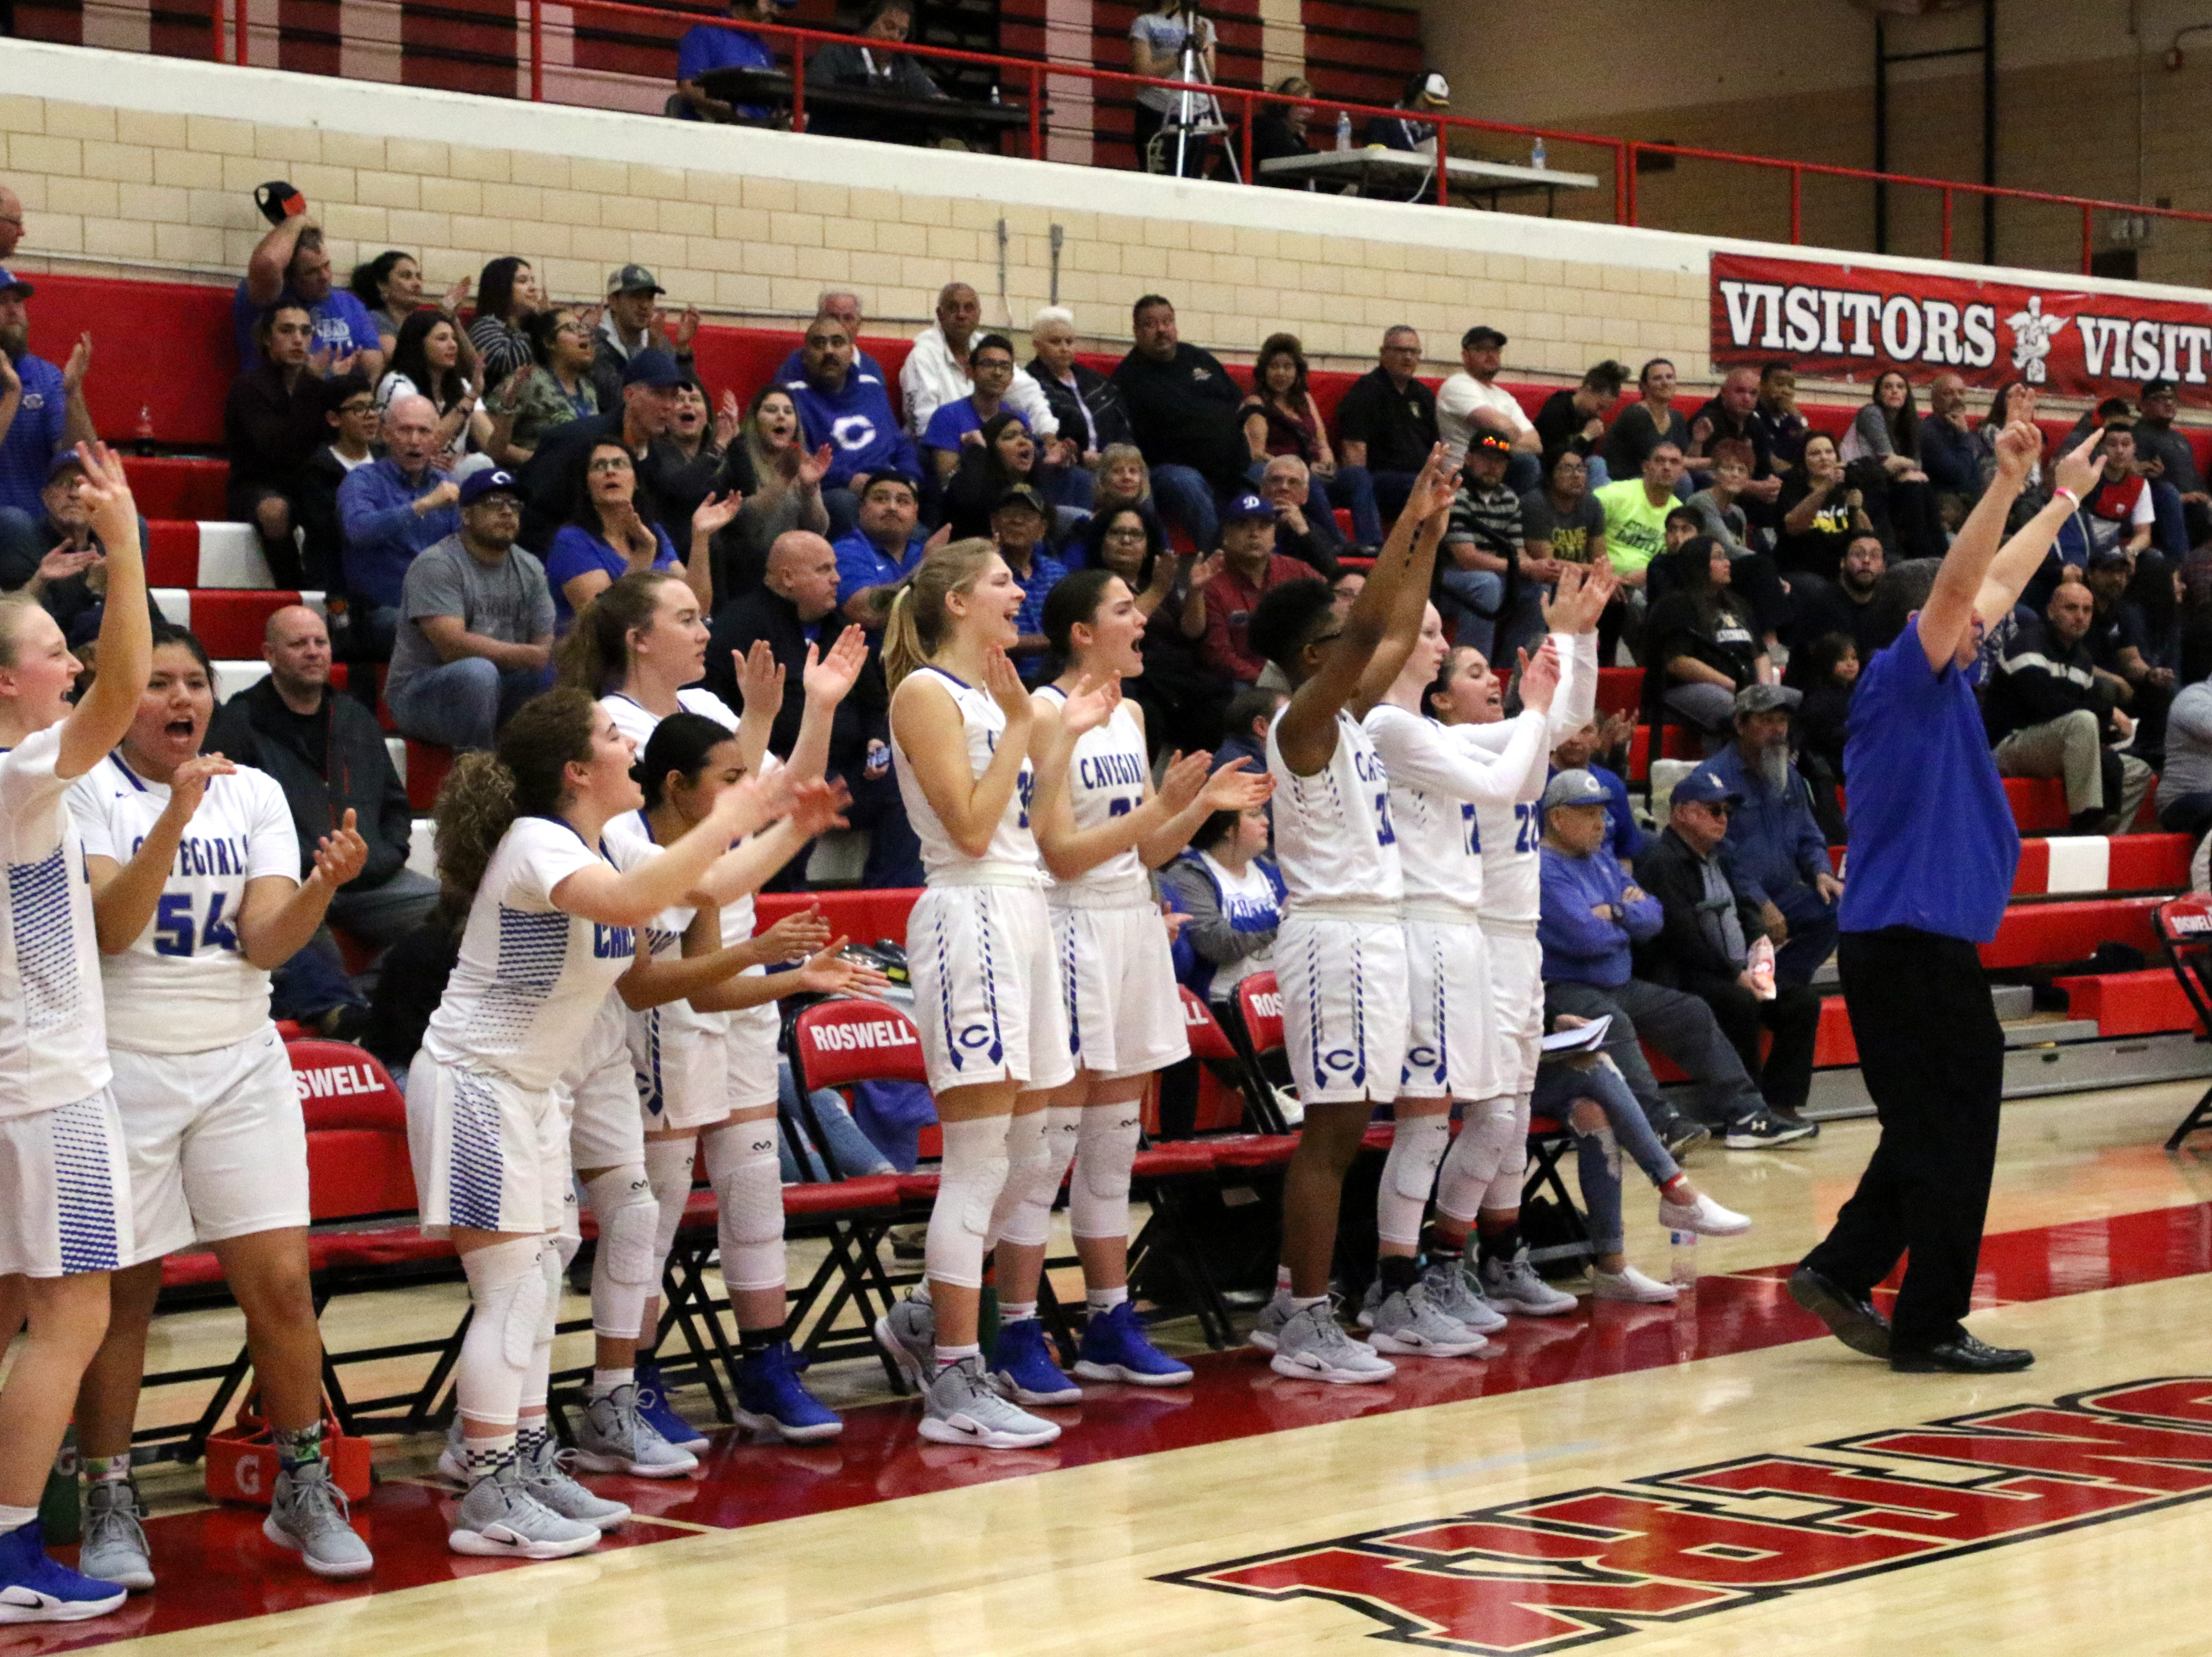 Carlsbad's bench erupts after a made 3-pointer during Monday's one-game playoff to determine the No. 1 team in Class 4-5A.